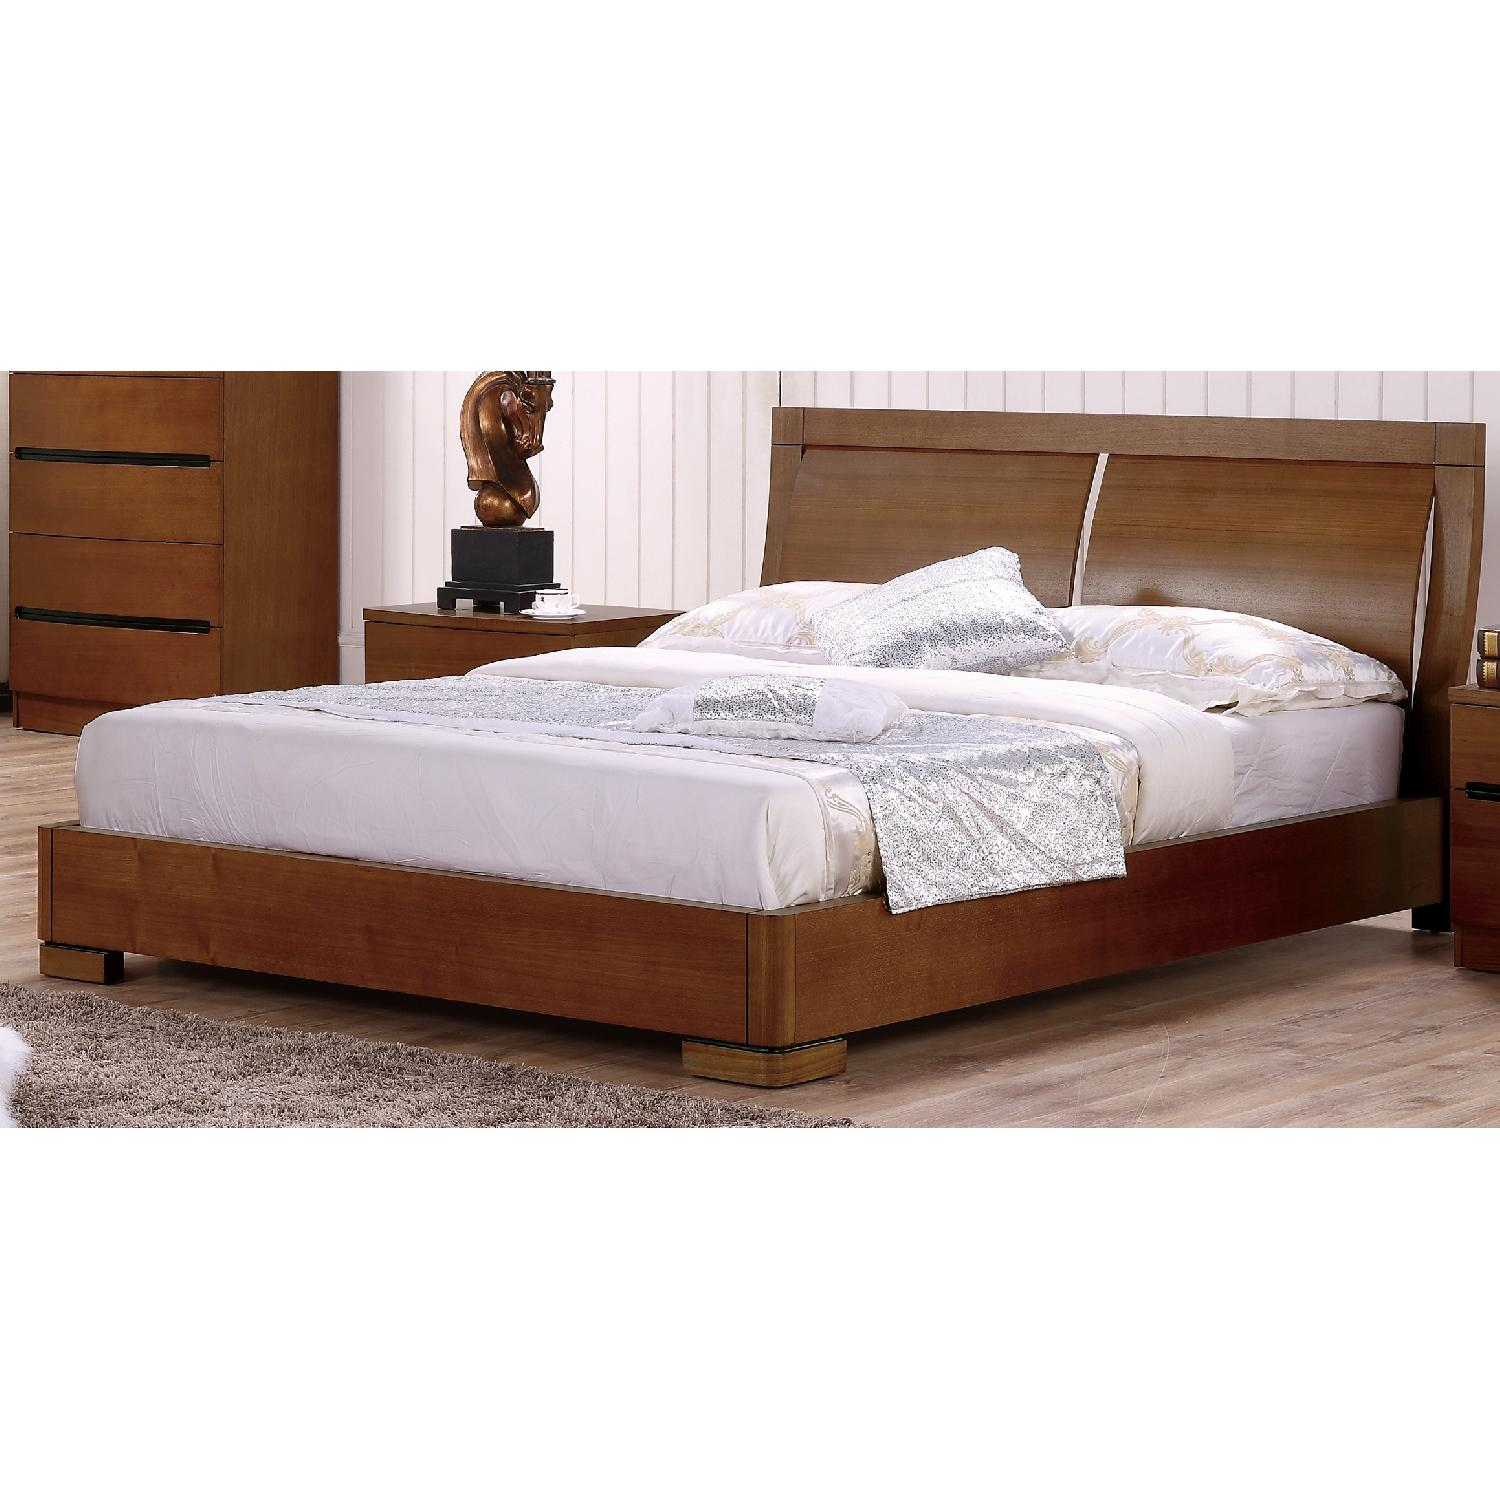 Some Known Questions About King Size Platform Bed.